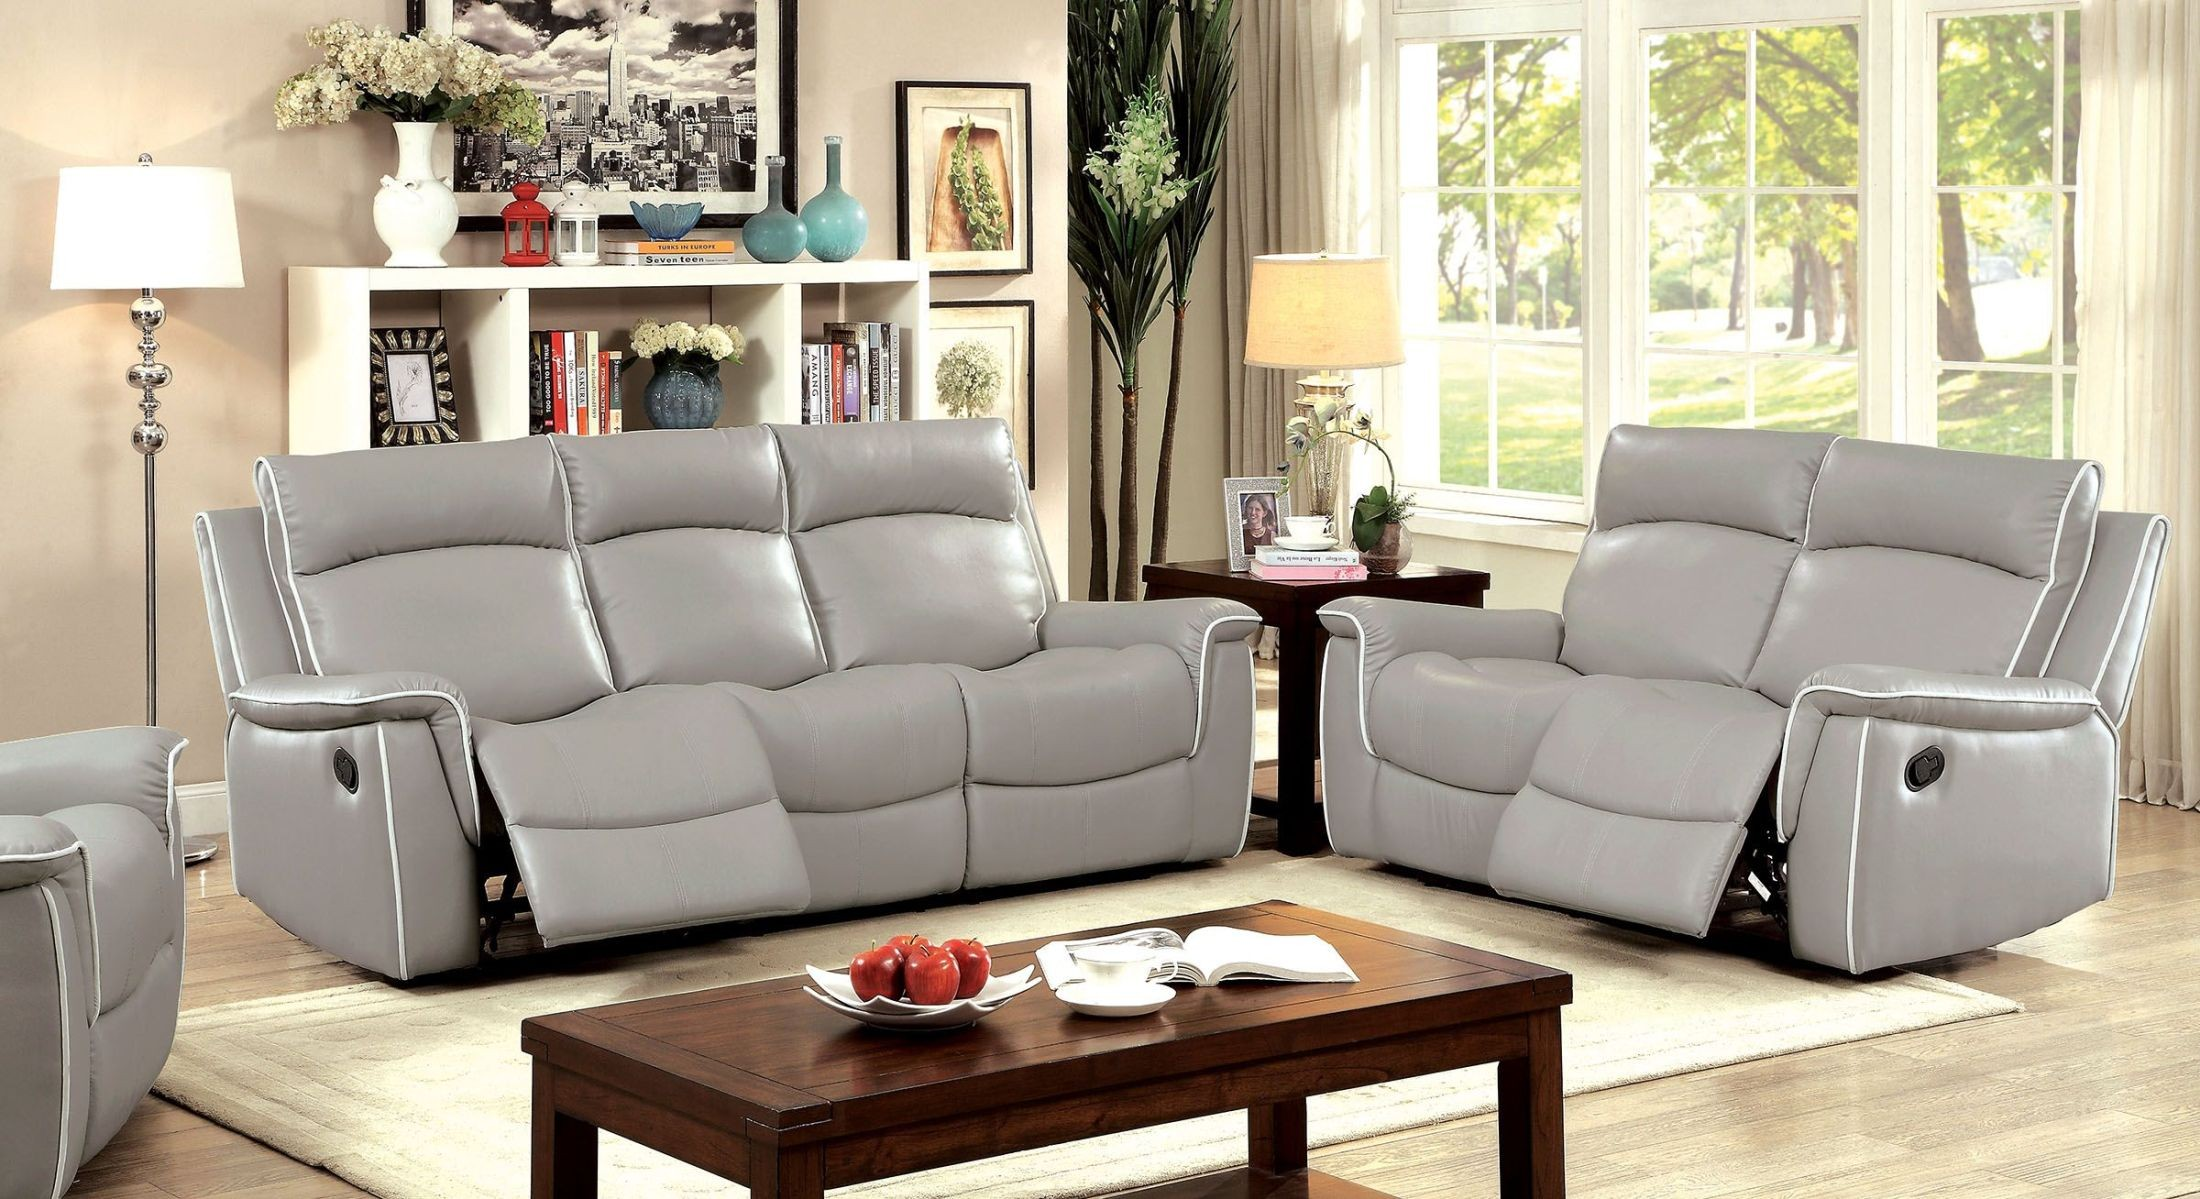 Grey Living Room Furniture Set : Salome Light Gray Recliner Living Room Set, CM6798-SF ...